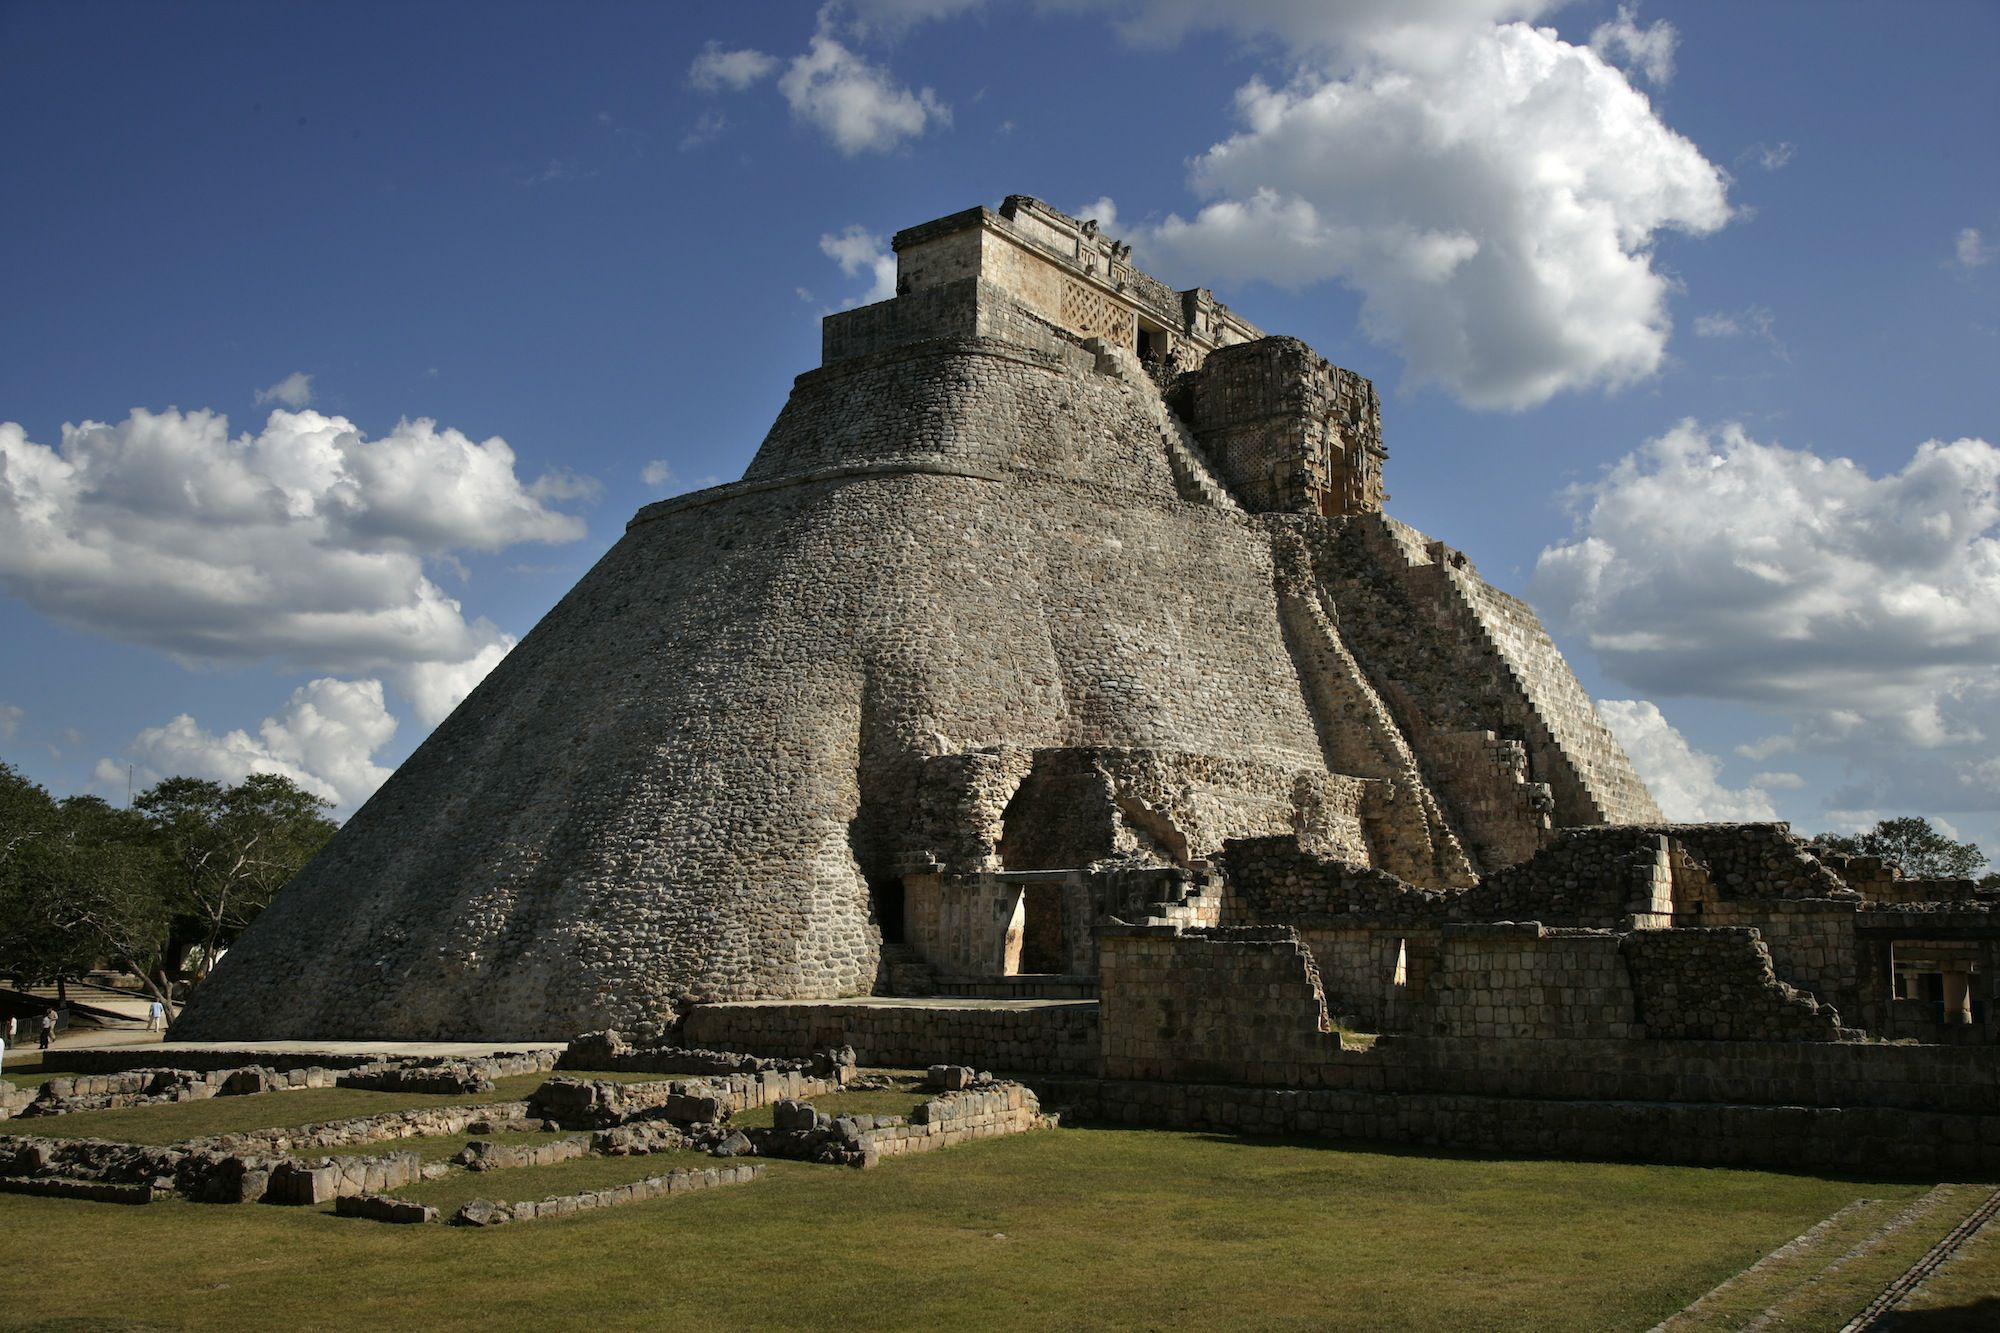 Architecture of the mexican maya past and present mexico archaelogy magicians pyramid sciox Gallery